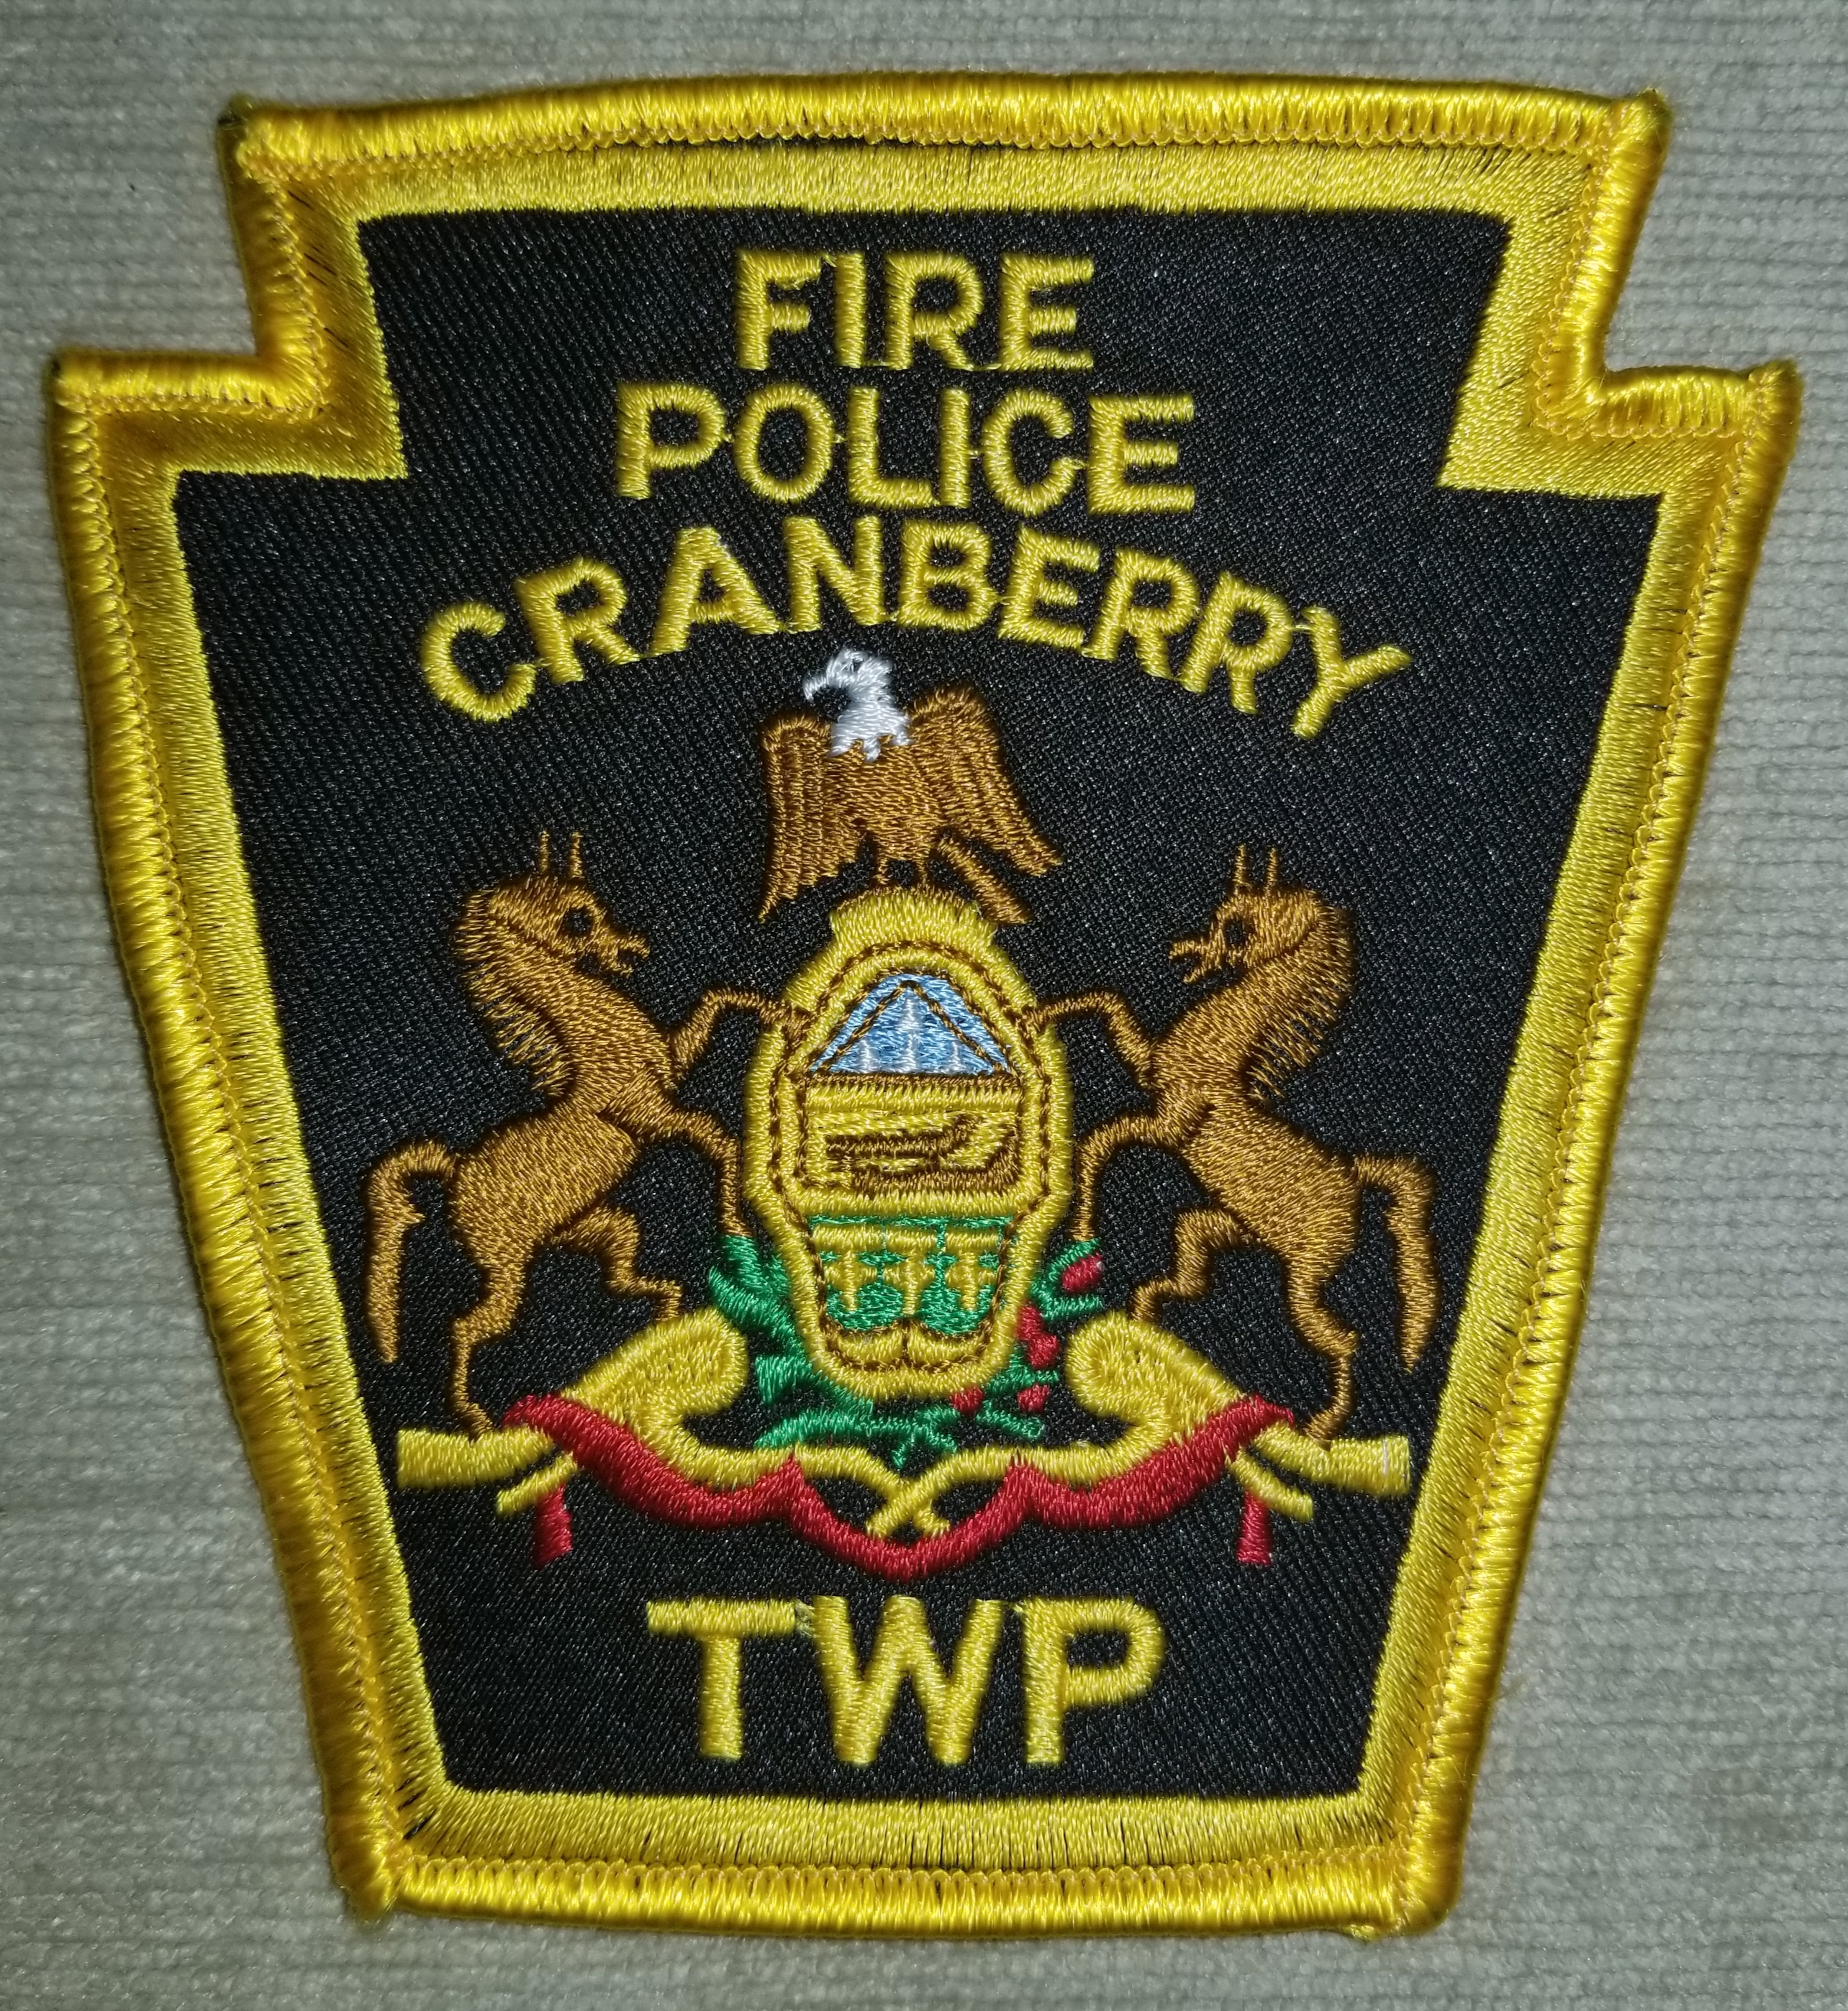 Cranberry Township Fire Police PA